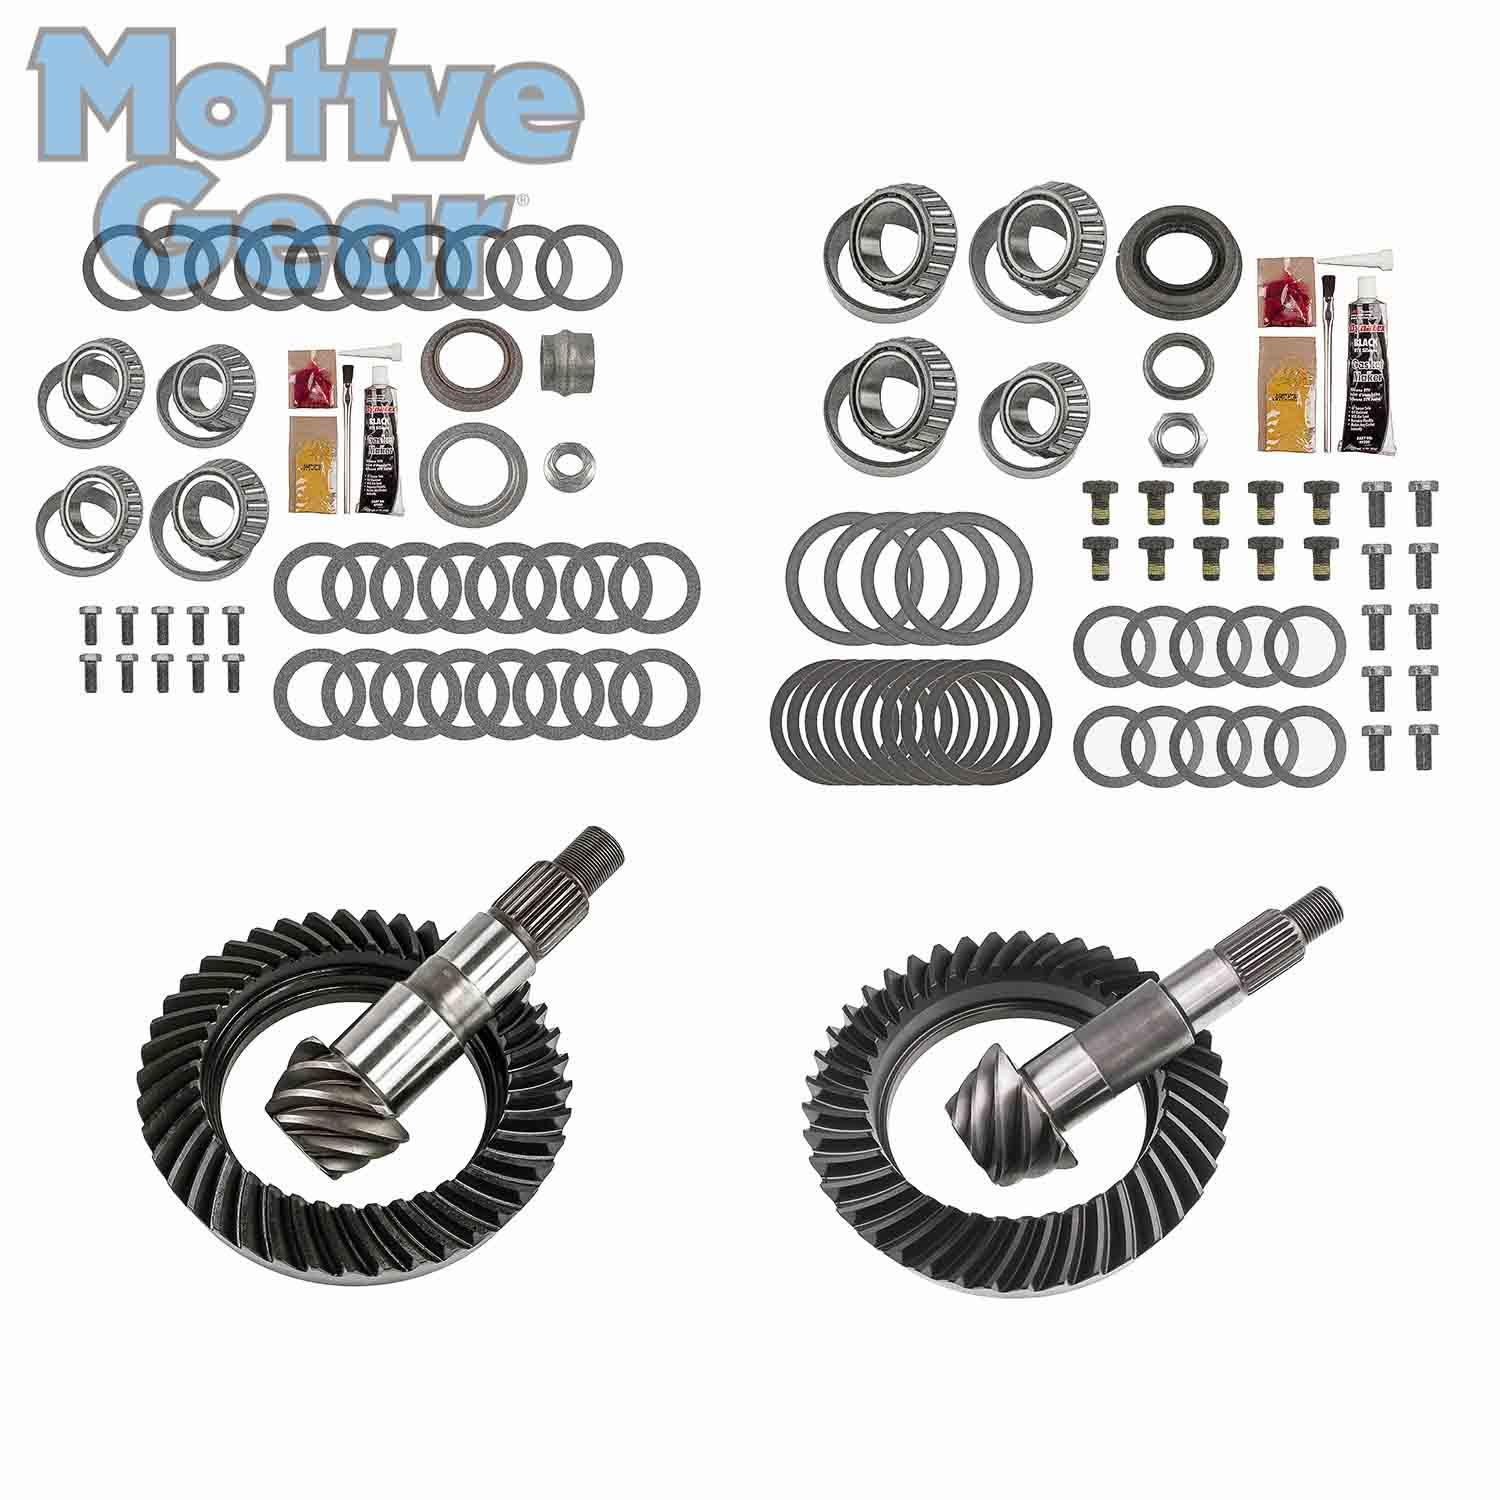 MGK-103 Motive Gear/Midwest Truck Differential Ring and Pinion DANA